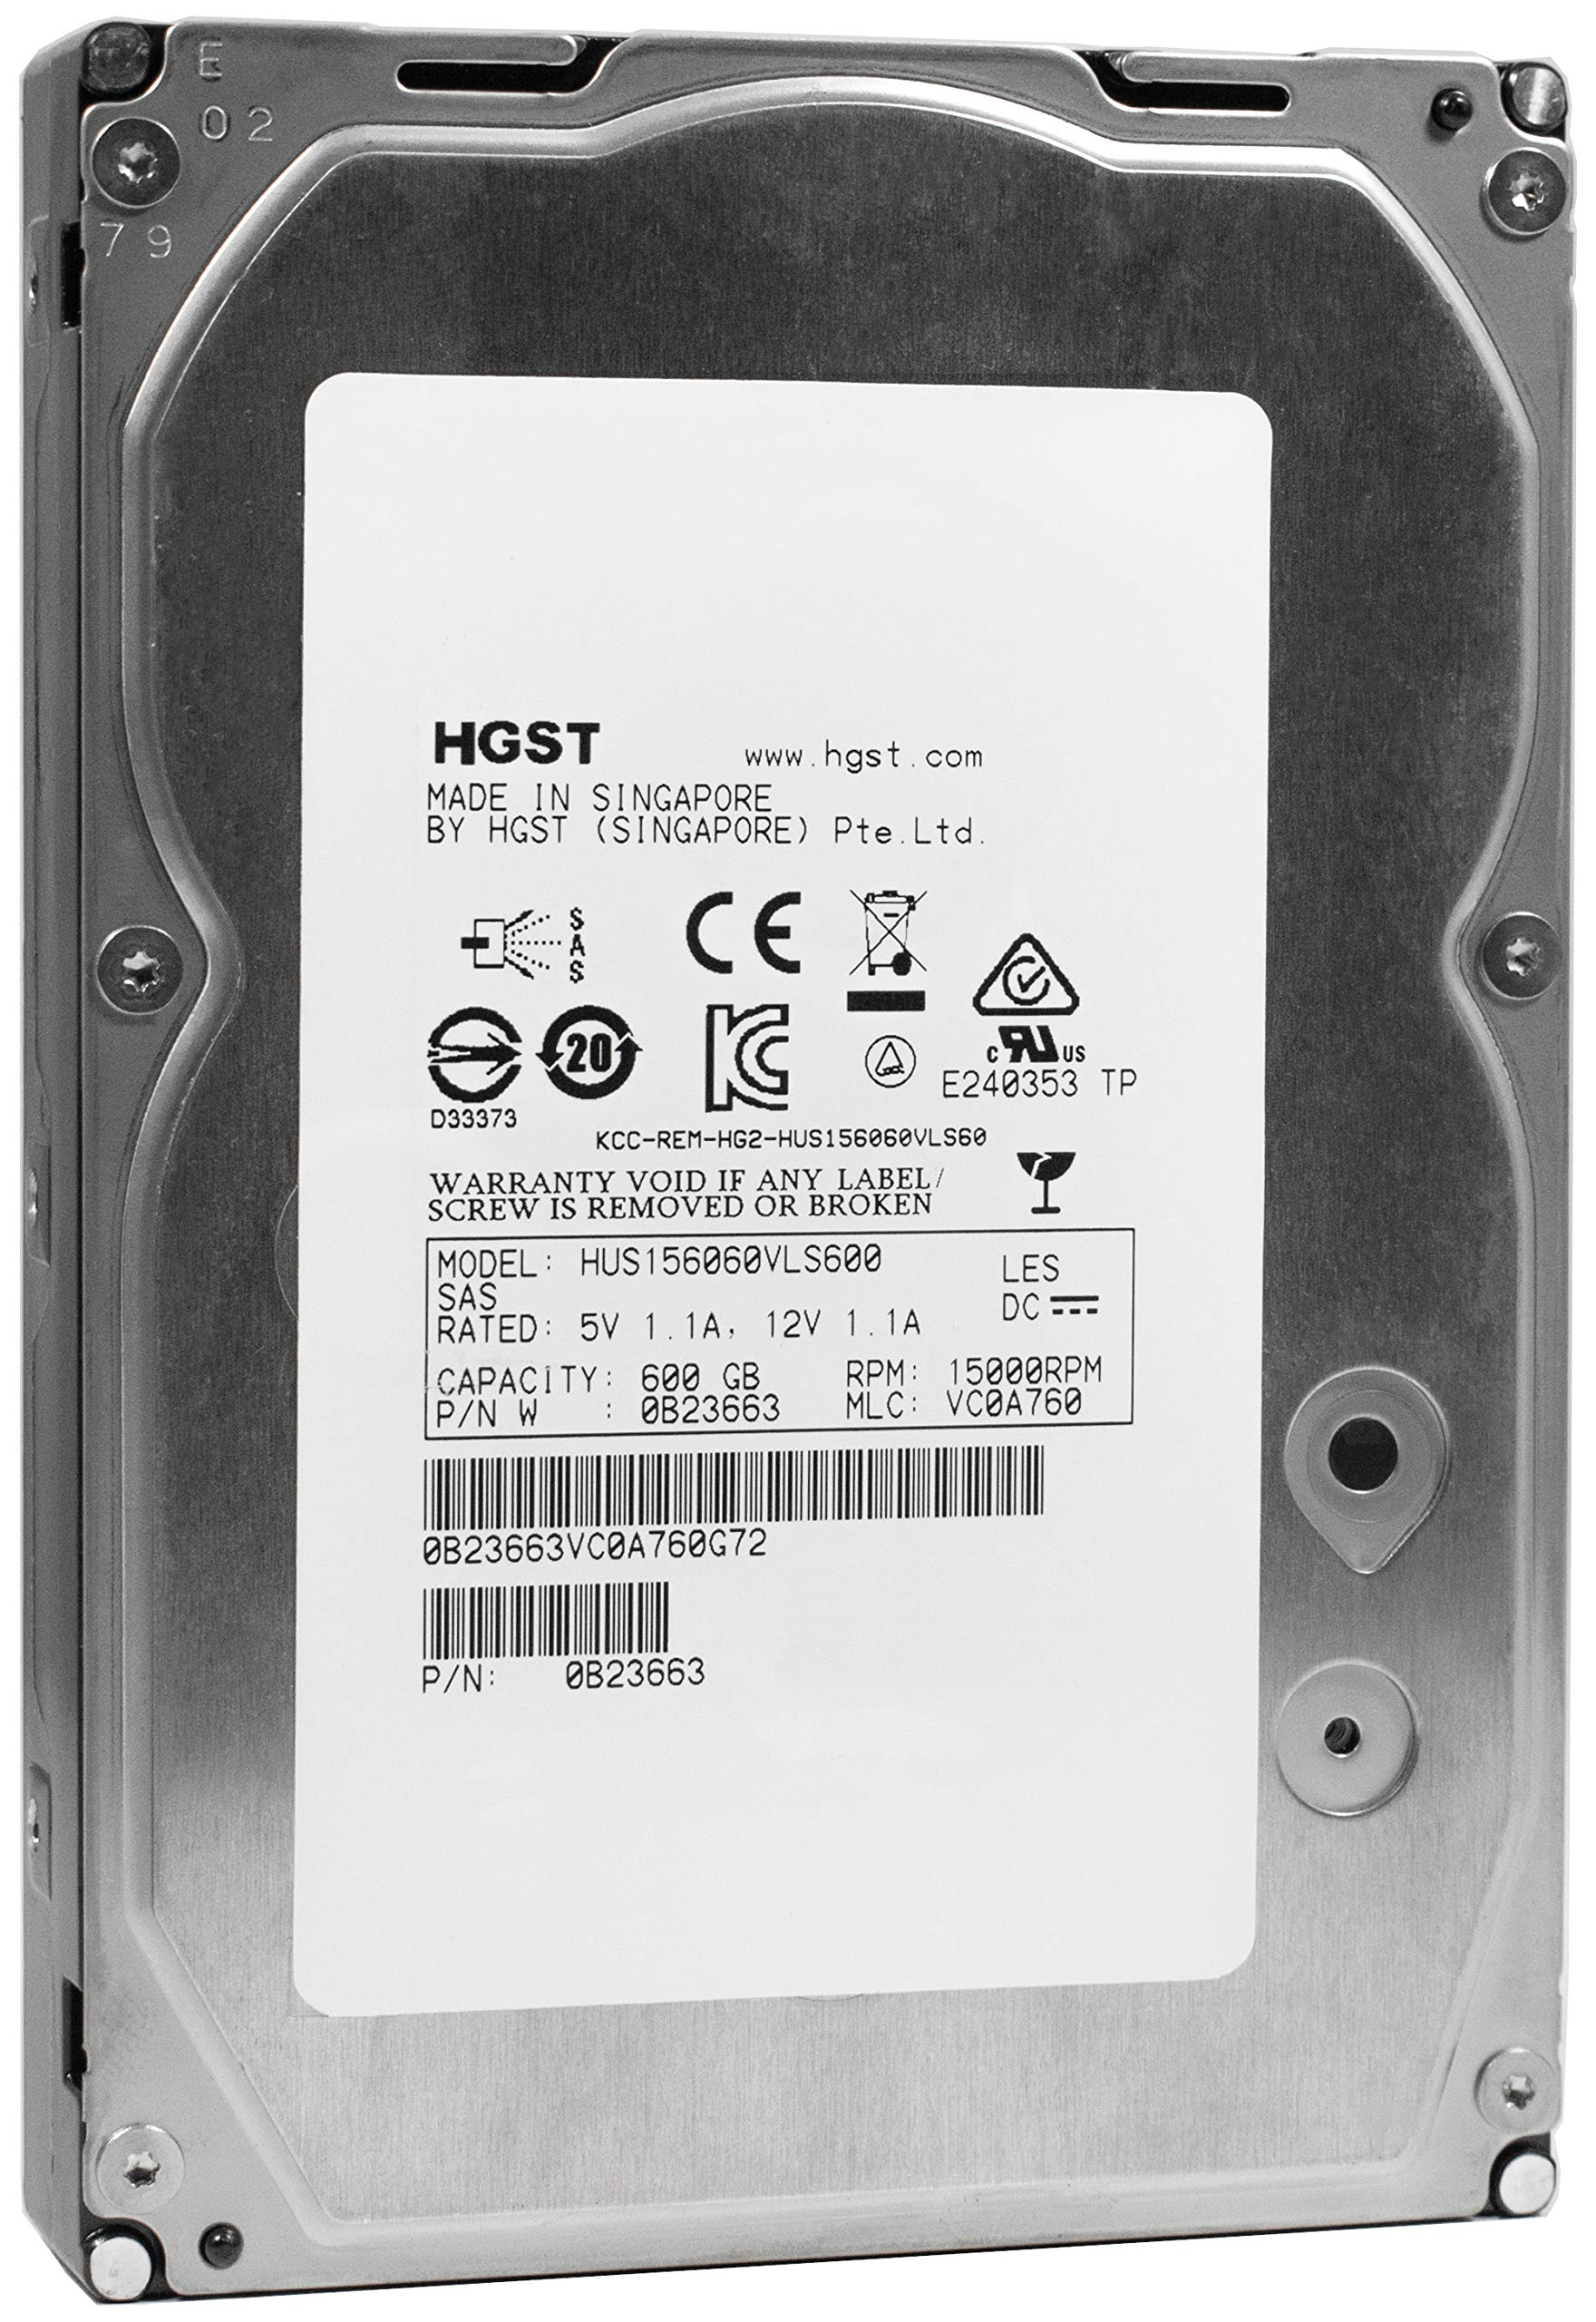 HGST Ultrastar 15K600 | 600GB 15K RPM SAS 6Gb/s 64MB Cache 3.5'' Inch | 1.6 Million MTBF | HUS156060VLS600 | Enterprise Hard Disk Drive With Mission Critical Performance (HDD)